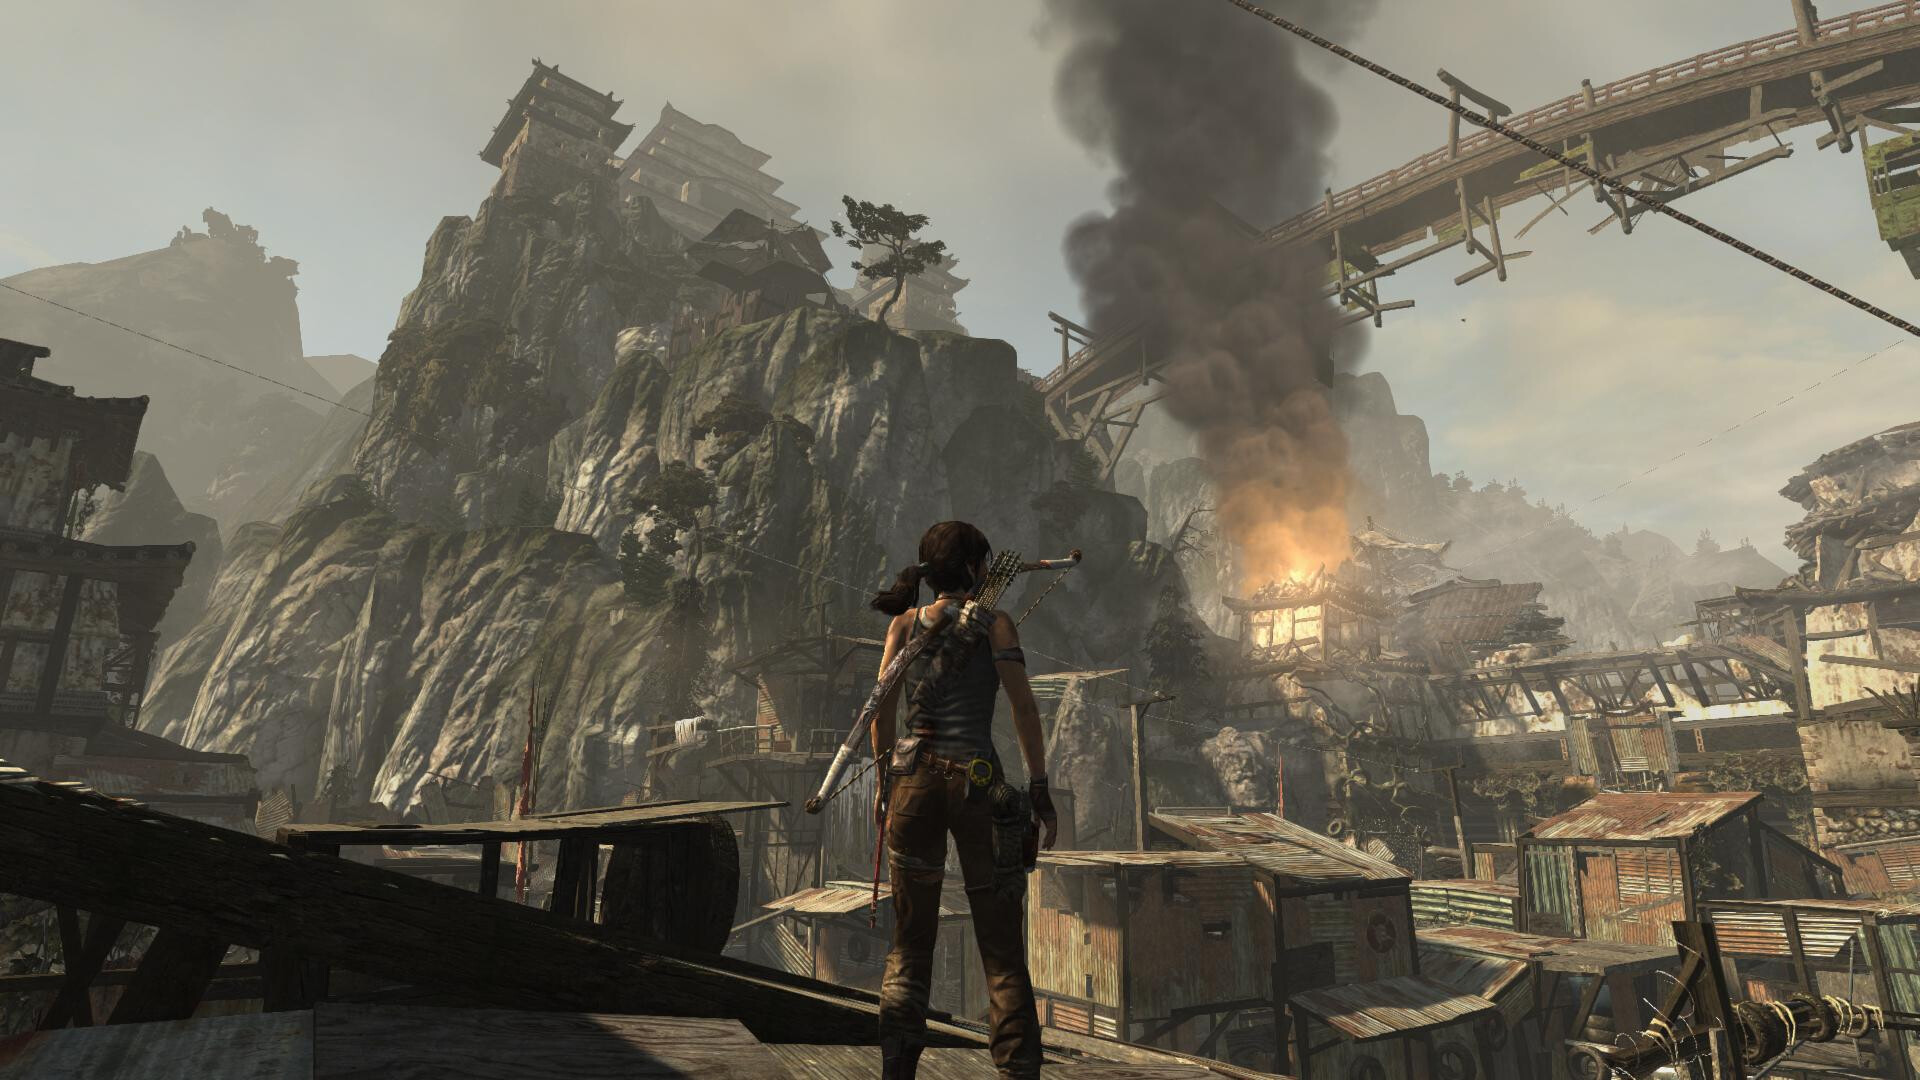 2013 S Tomb Raider Game Is Now Available On The Android Based Shield Tv For 14 99 Phonearena